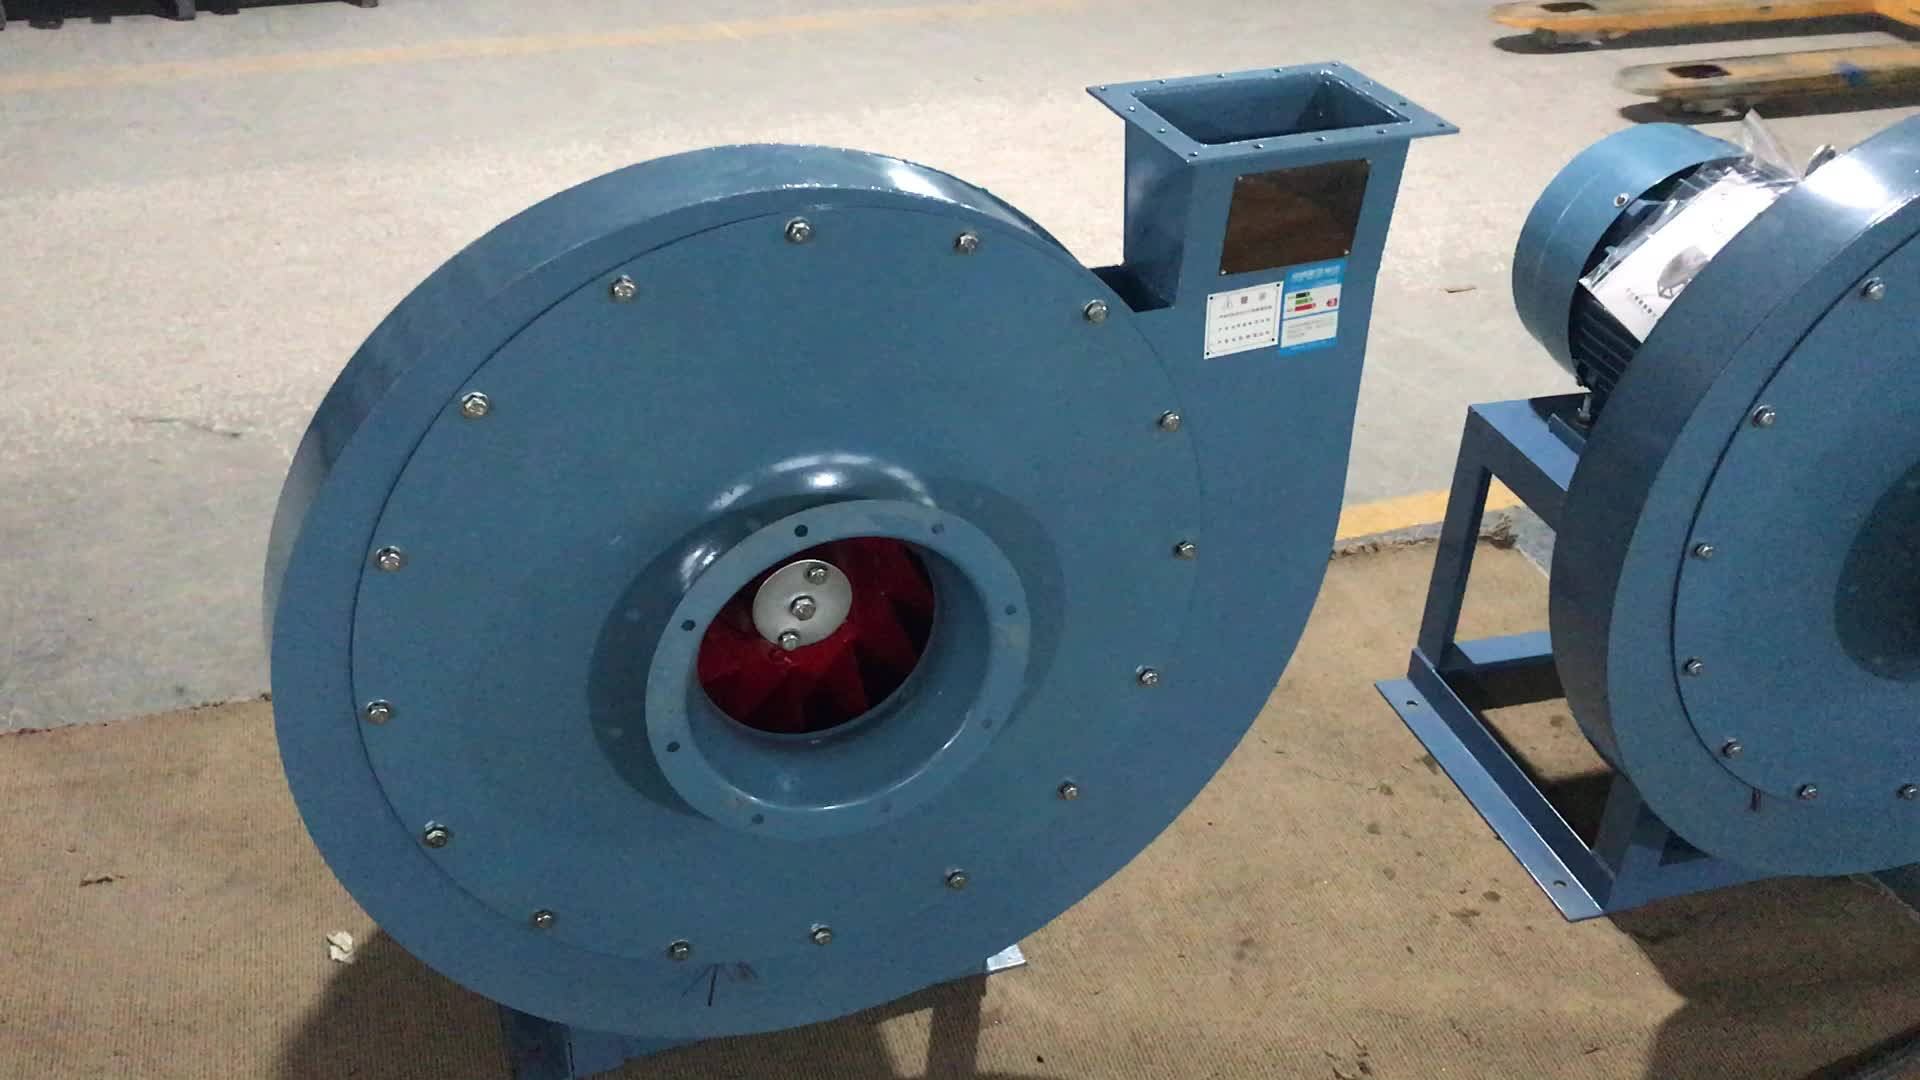 Centrifugal Fans And Blowers : High pressure centrifugal fans blowers blower fan buy